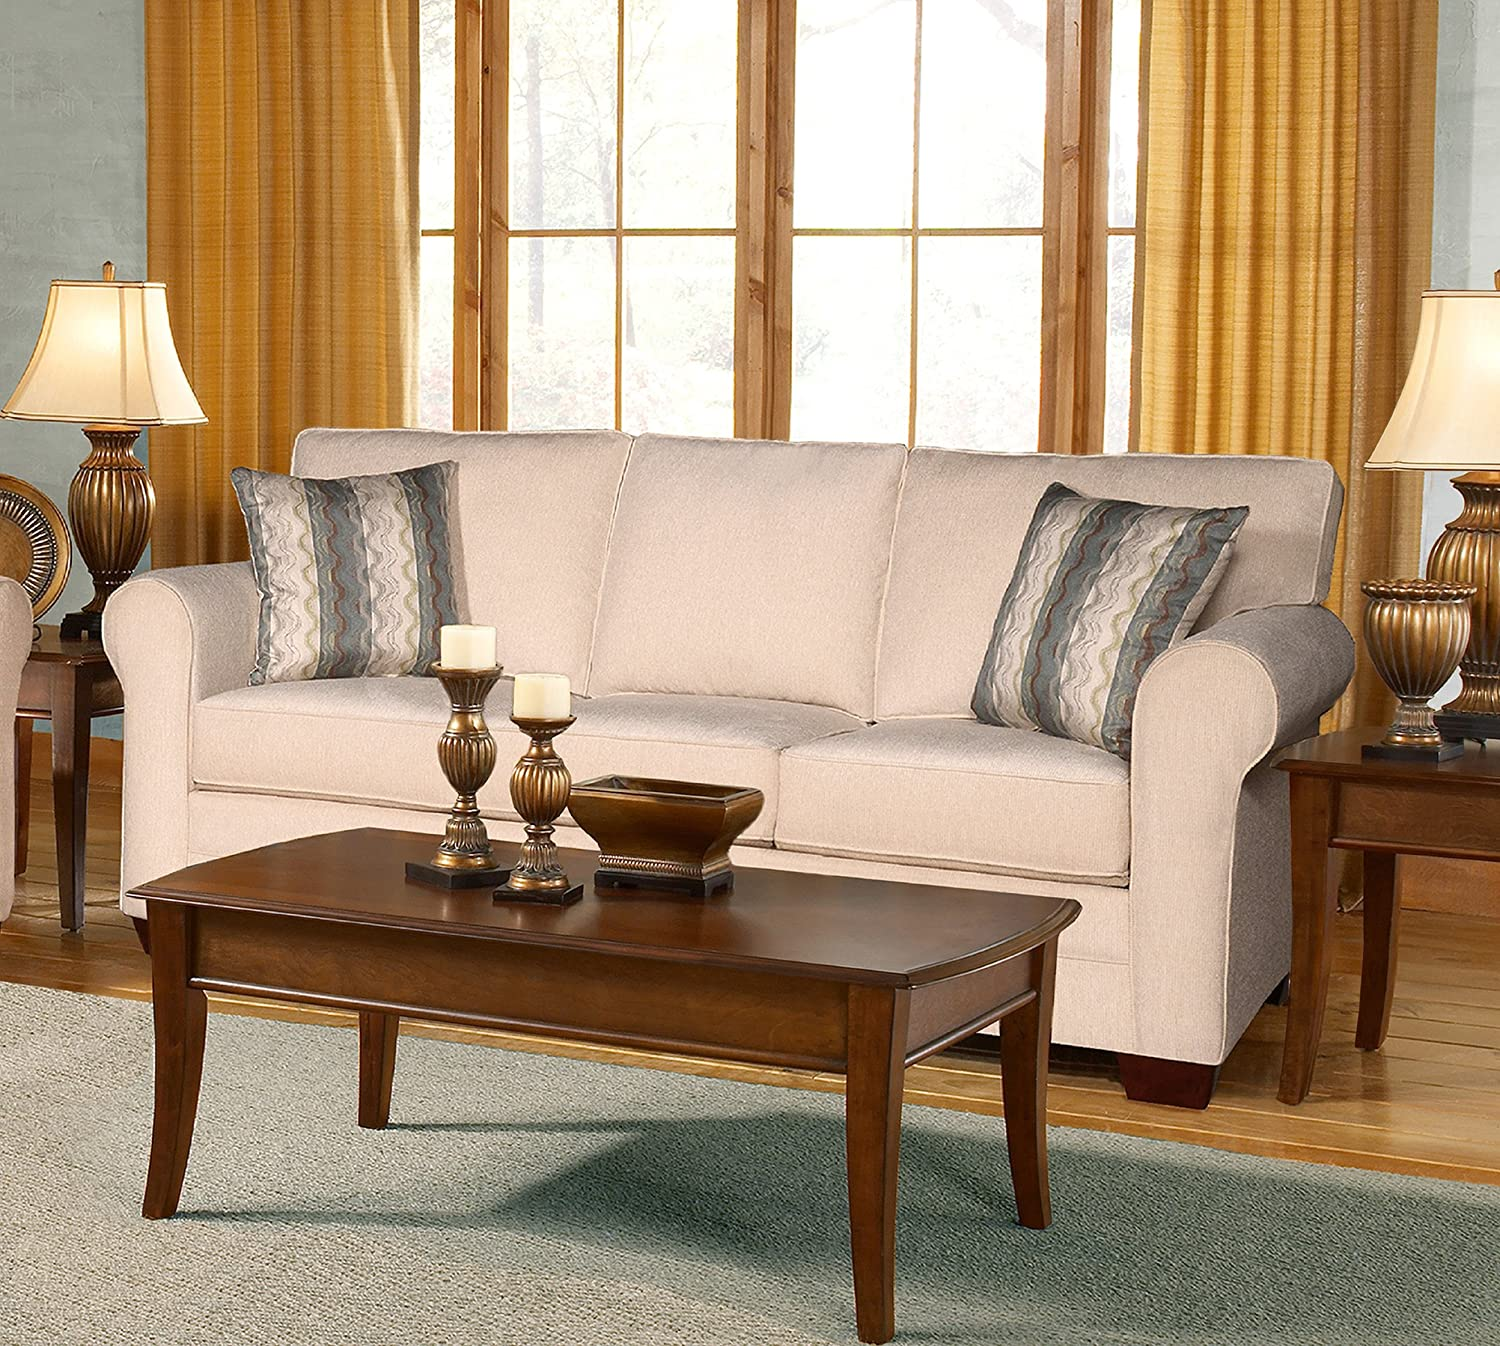 Chelsea Home Furniture Vicki Sofa - Sagittarius Pearl/Wow Spa Pillows